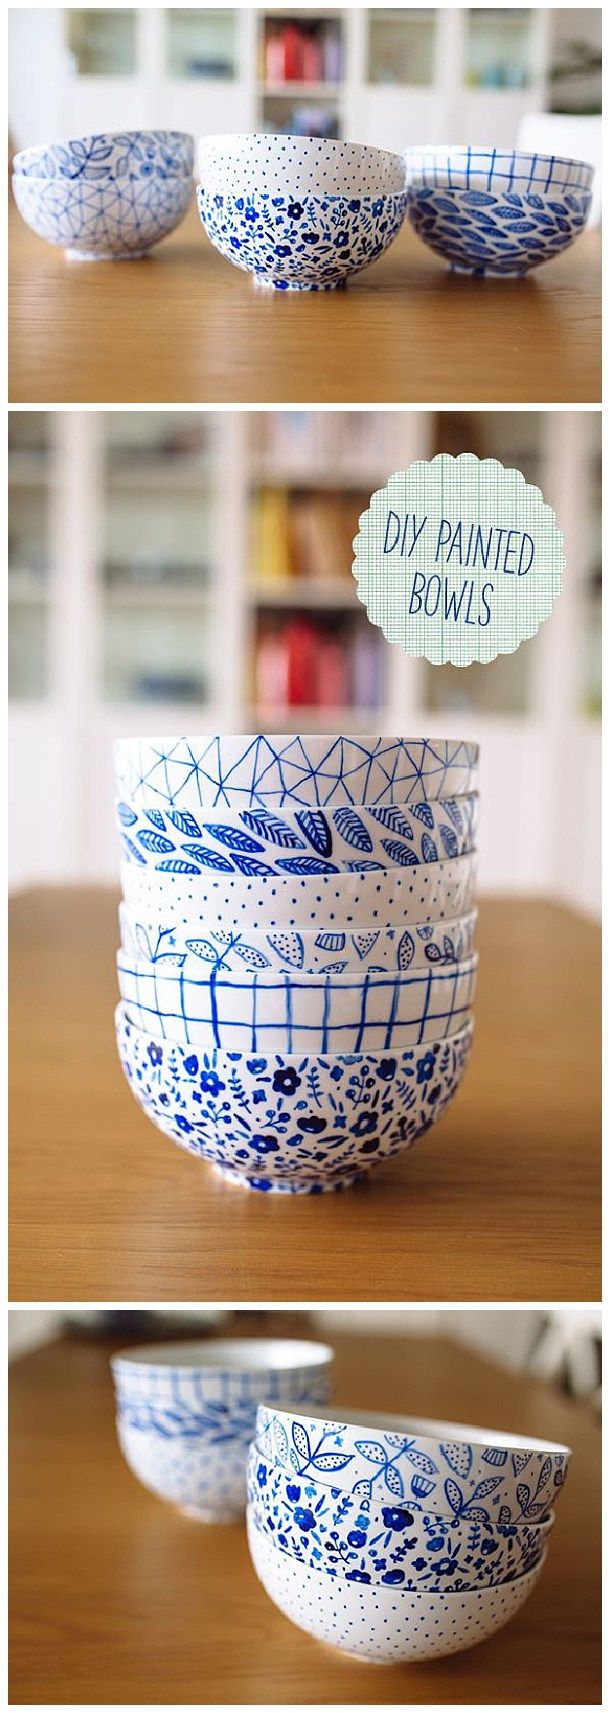 The best do it yourself gifts fun clever and unique diy craft these would make the prettiest gifts fill them with homemade baked treats diy painted bowls tutorial fellowfellow solutioingenieria Image collections